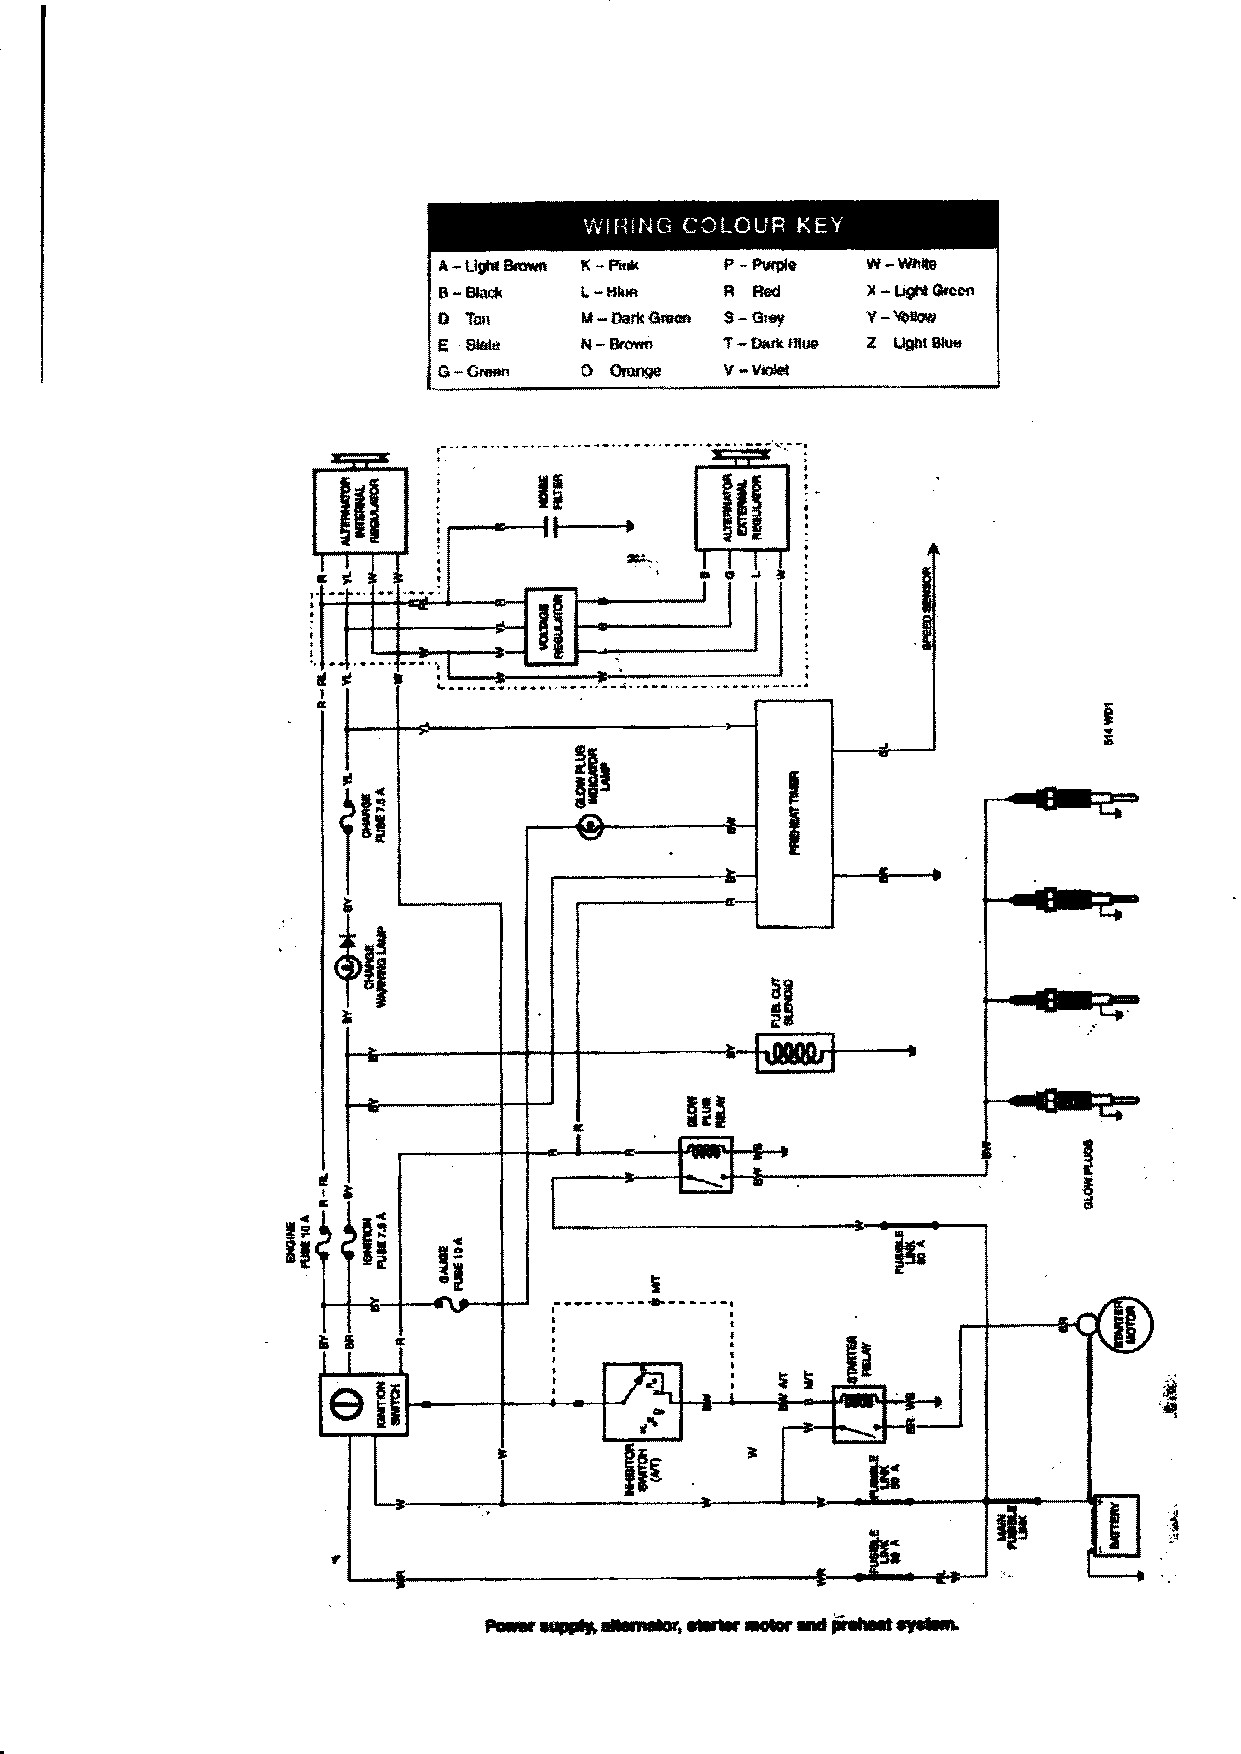 [VL_6898] Toyota Hilux Pickup Power Window Wiring Diagrams